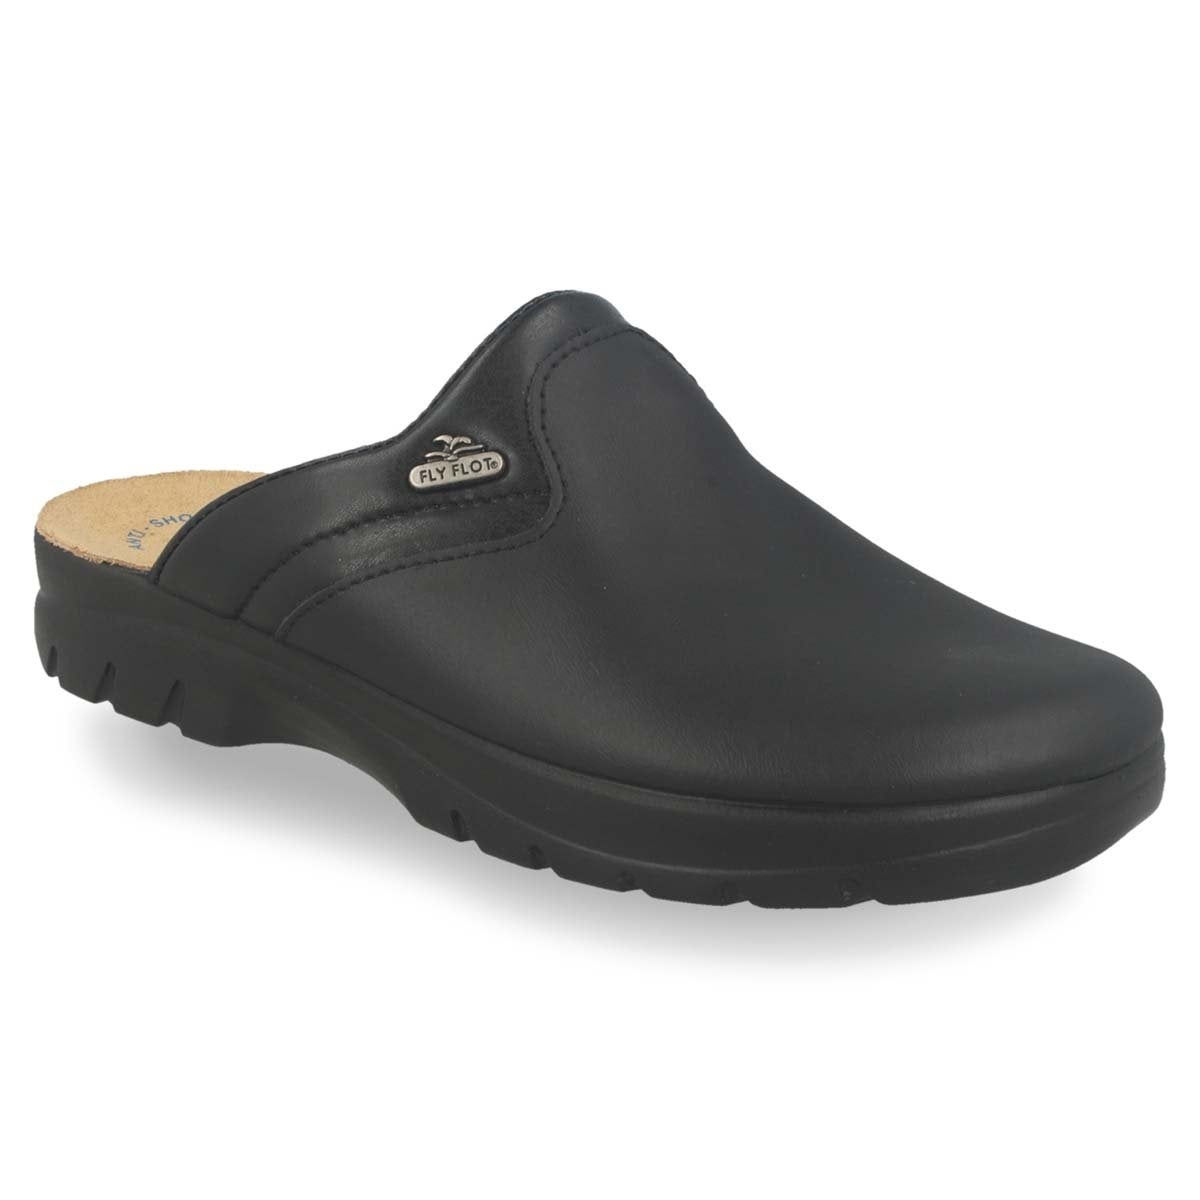 Photo of the Leather Man Slipper Black  (62004bc)